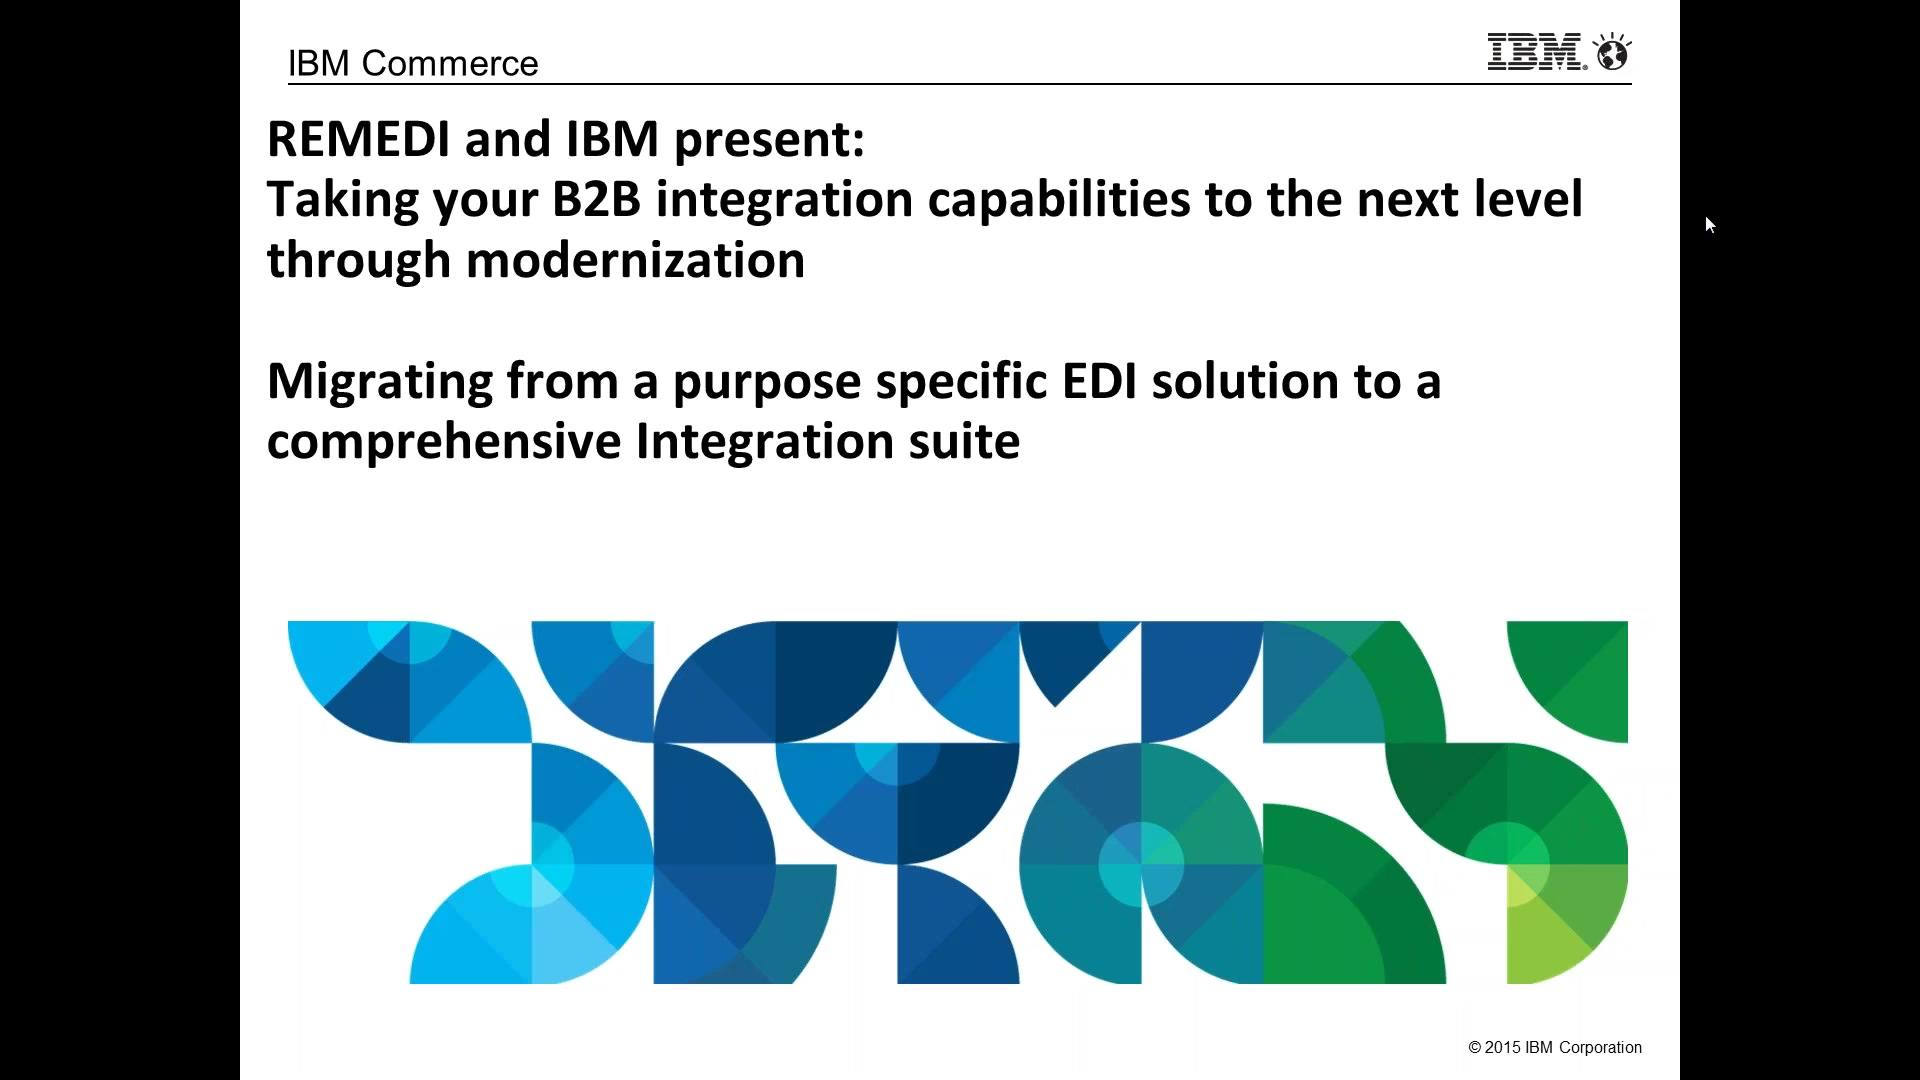 migrating-from-an-edi-solution-to-an-integration-suite